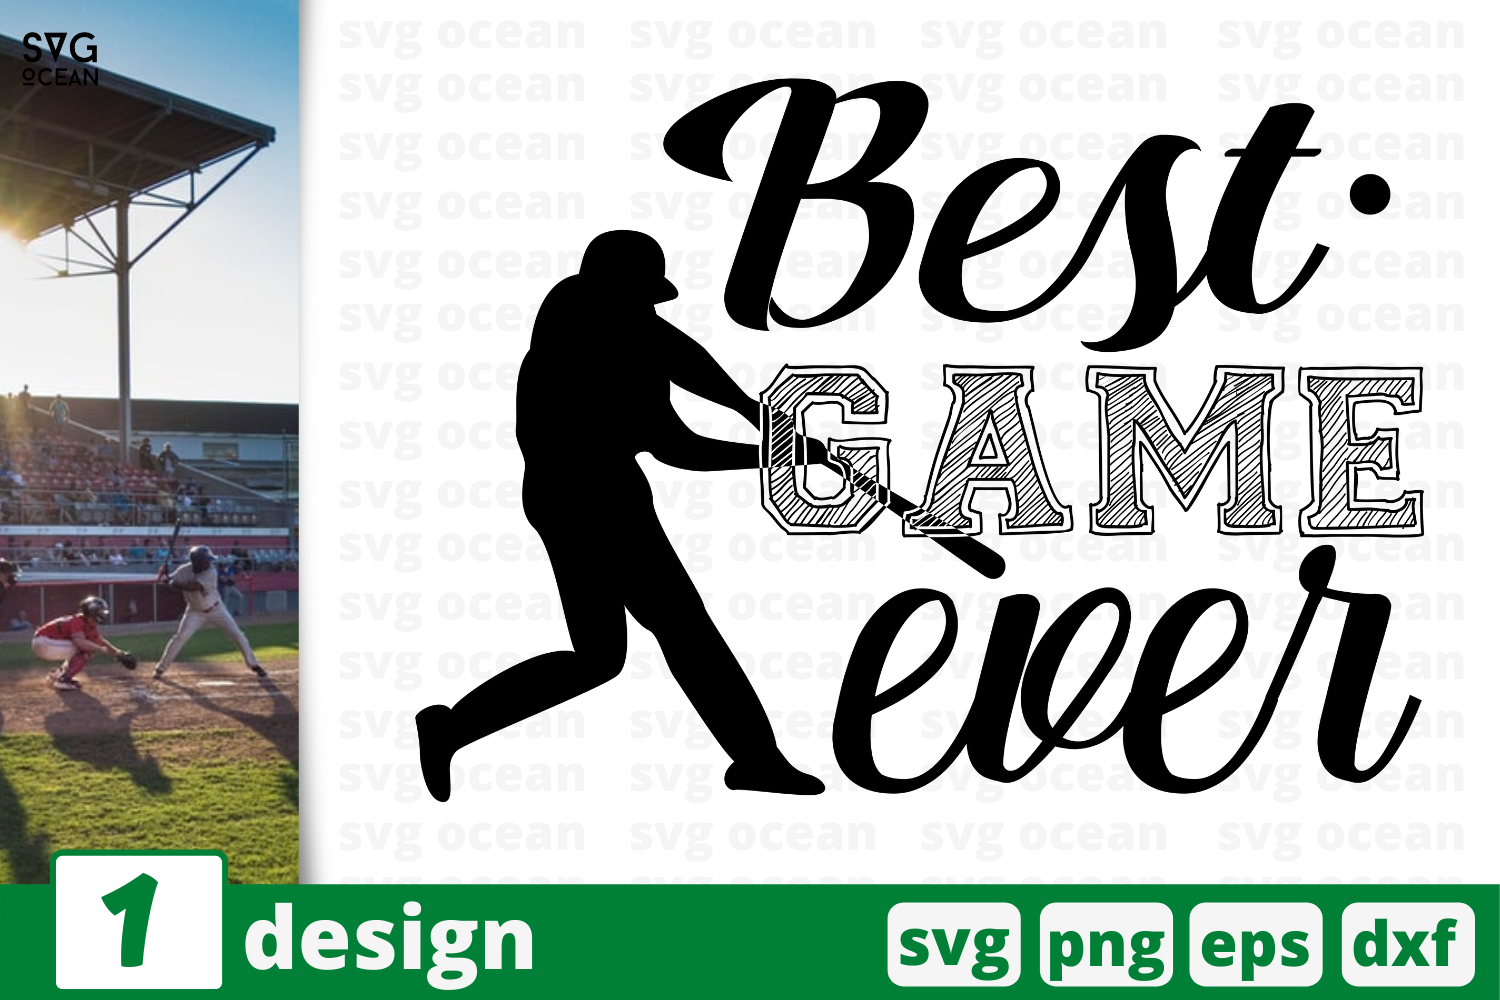 Download Free 1 Best Game Ever Baseball For Cricut Graphic By Svgocean Creative Fabrica for Cricut Explore, Silhouette and other cutting machines.